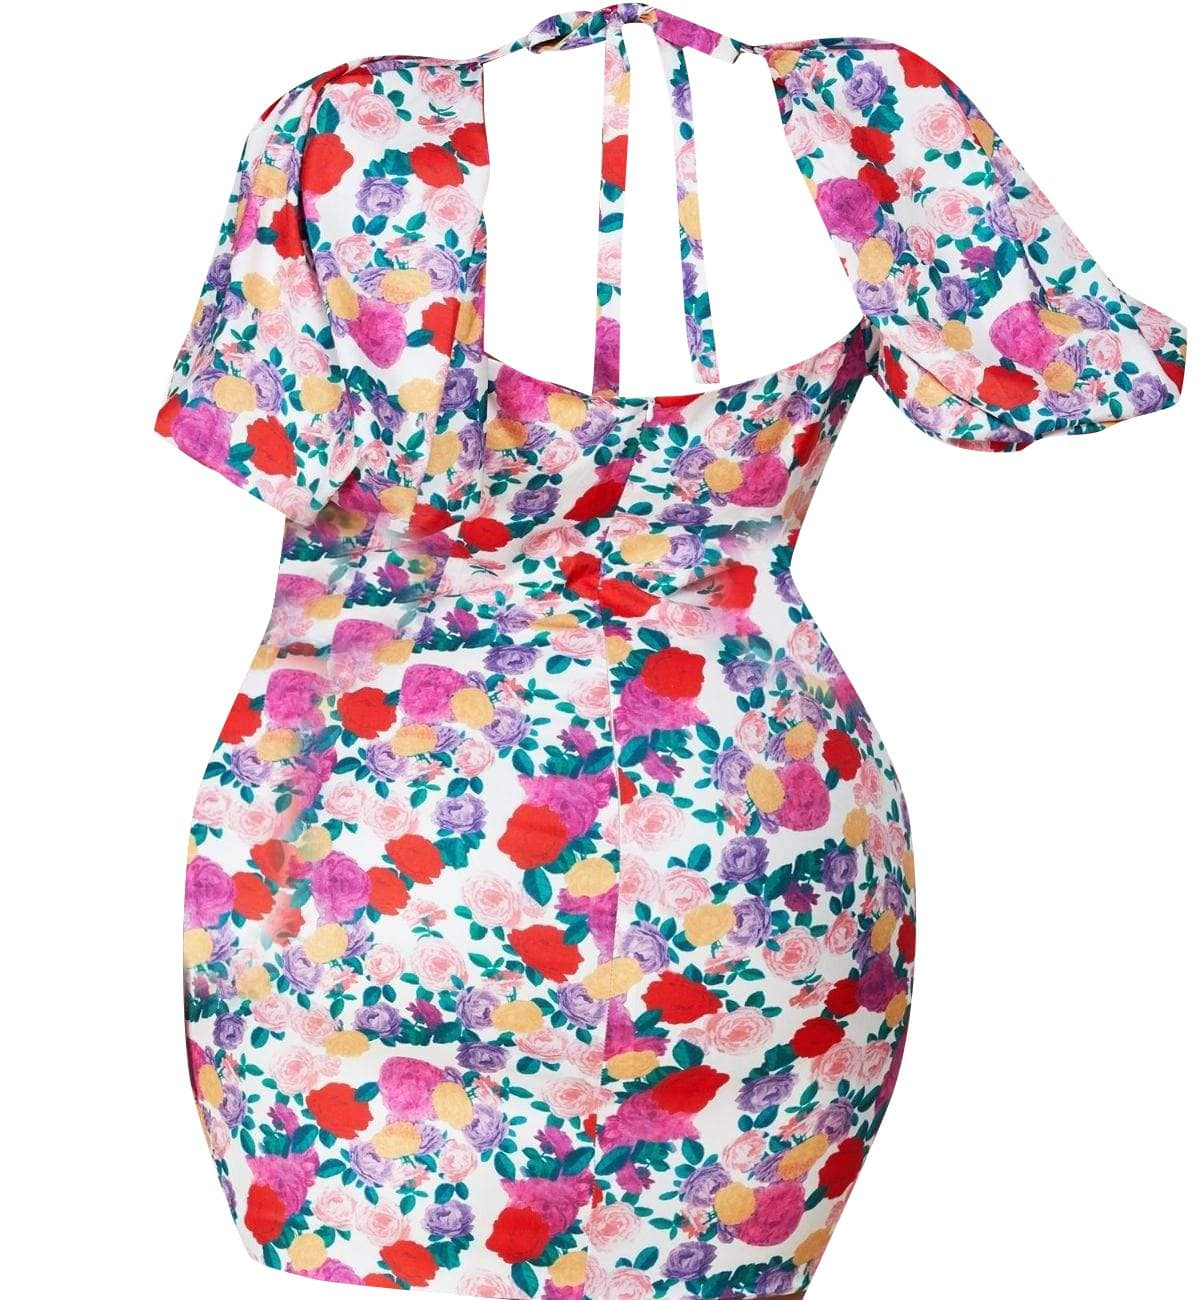 Rose Floral Print Plus Mini Dress - Posh Shoppe